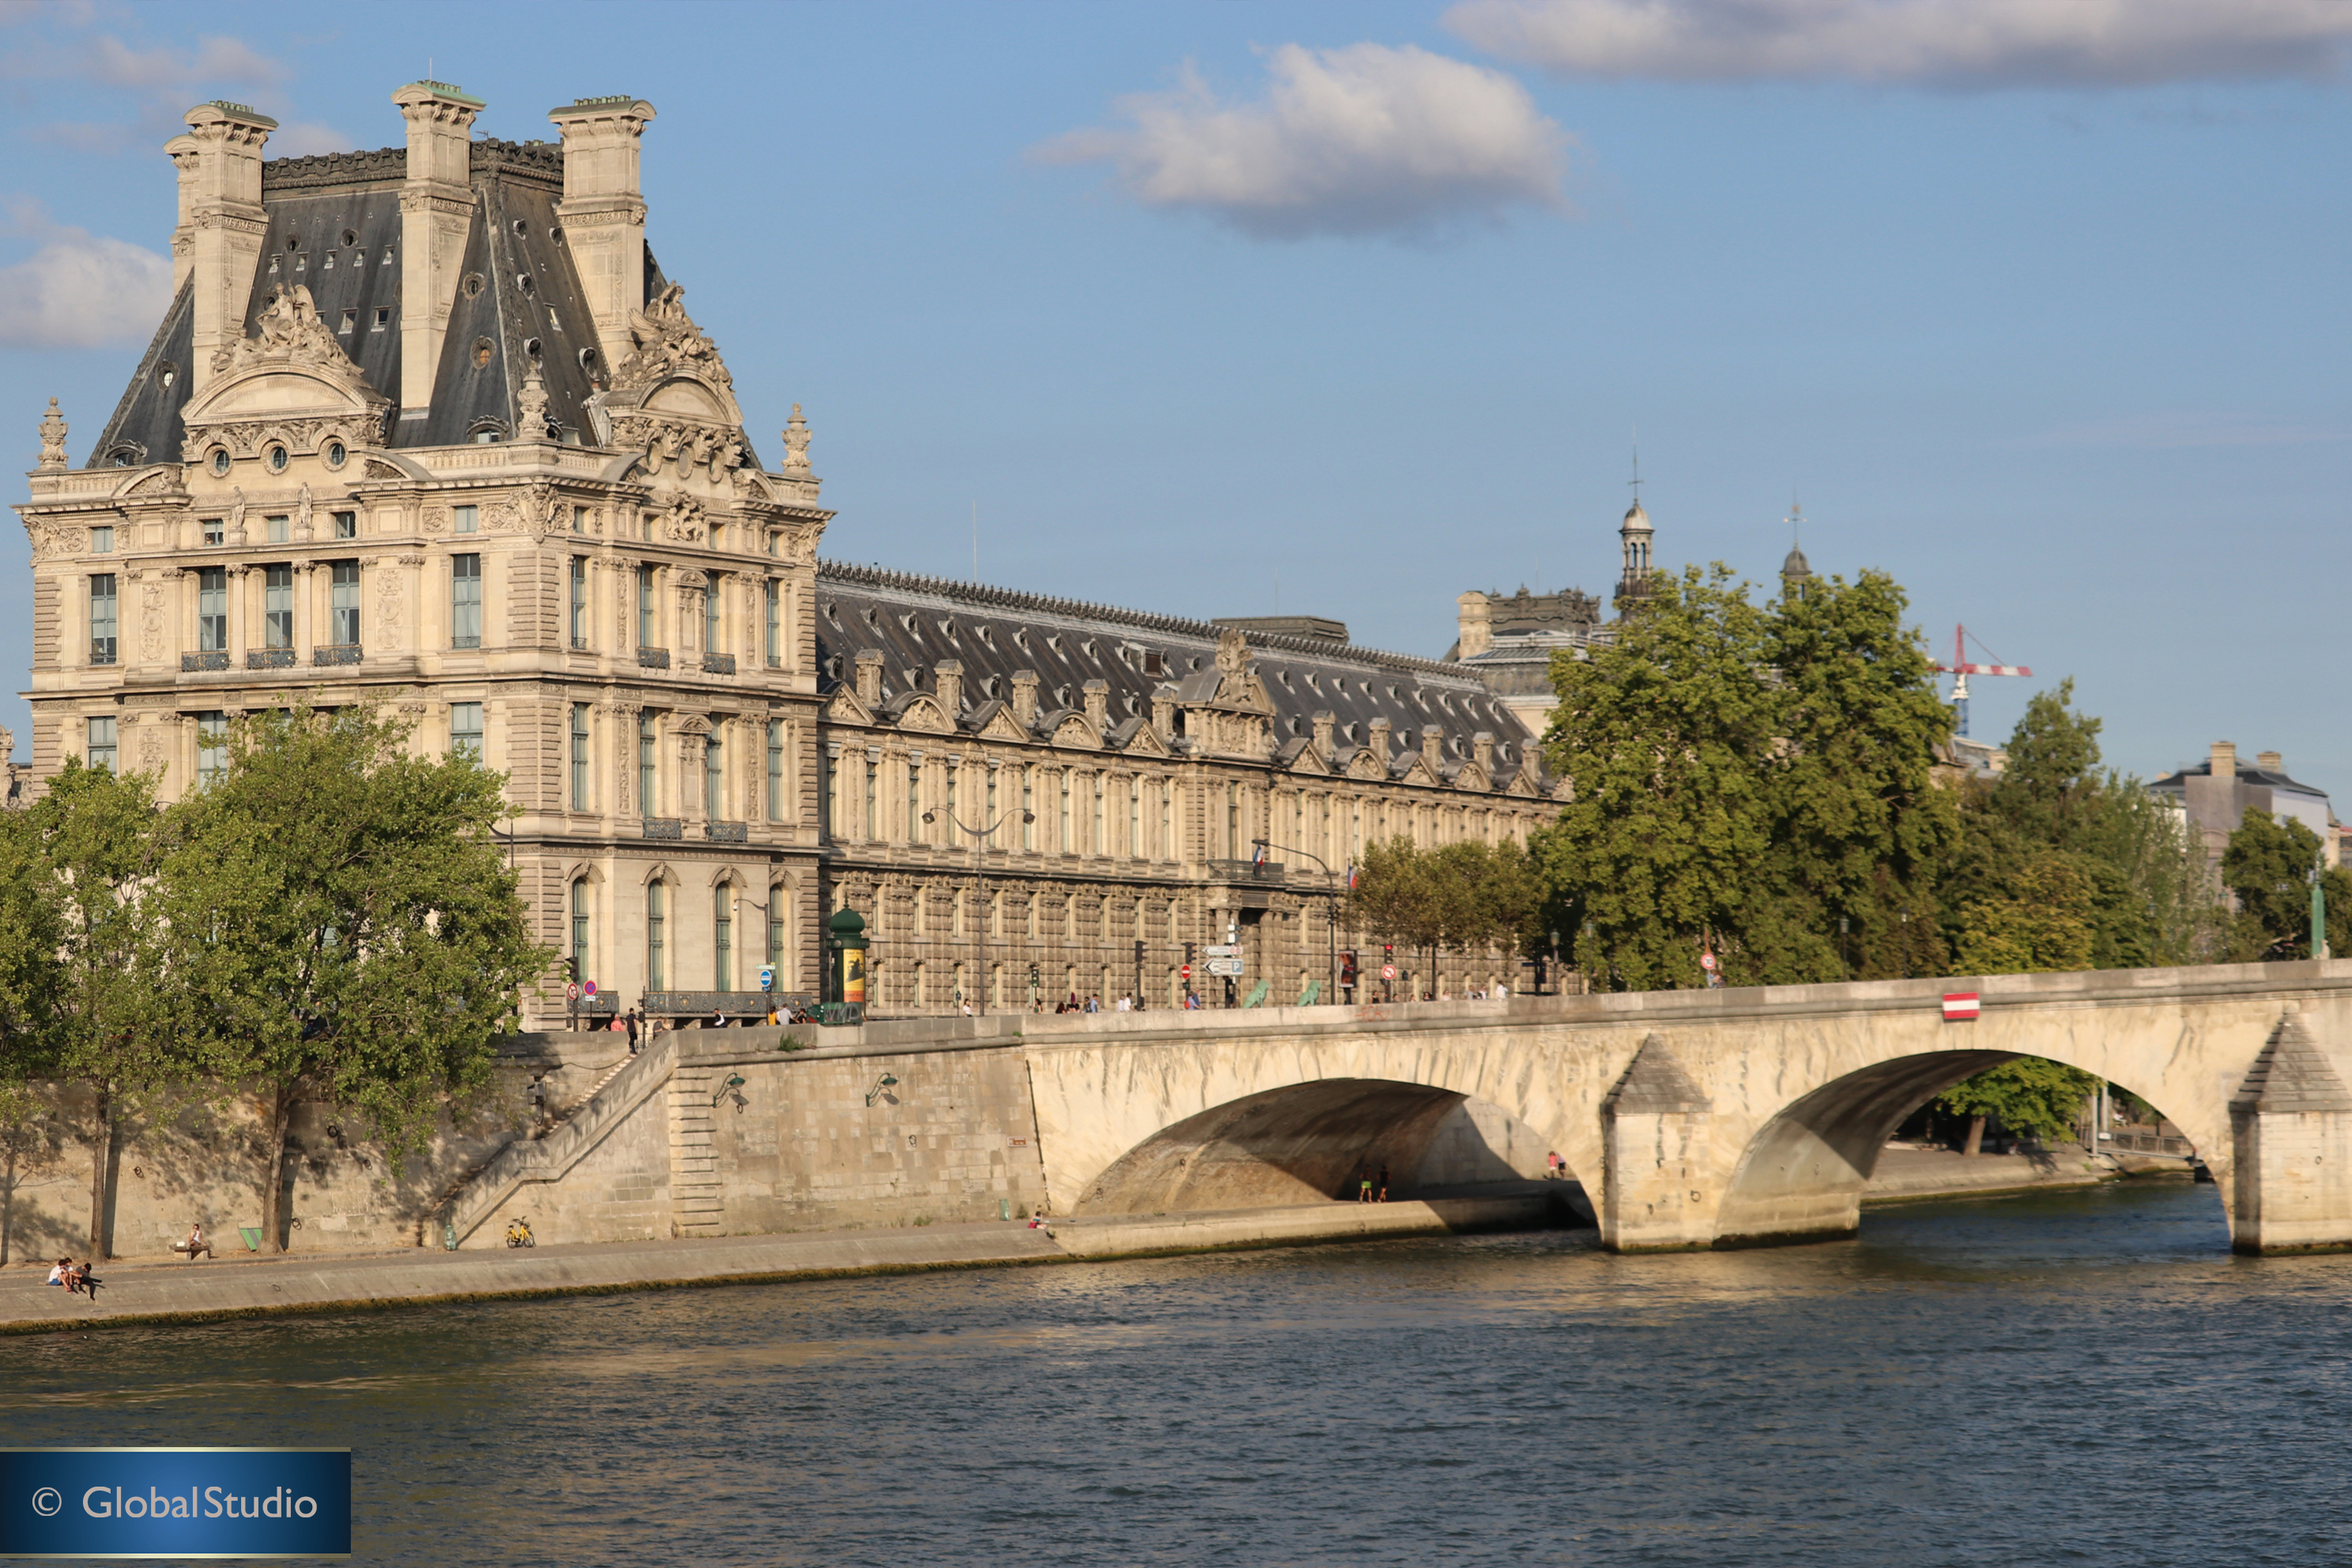 Paris-River-Building-c-Global-Studio-Michael-K-Reynolds